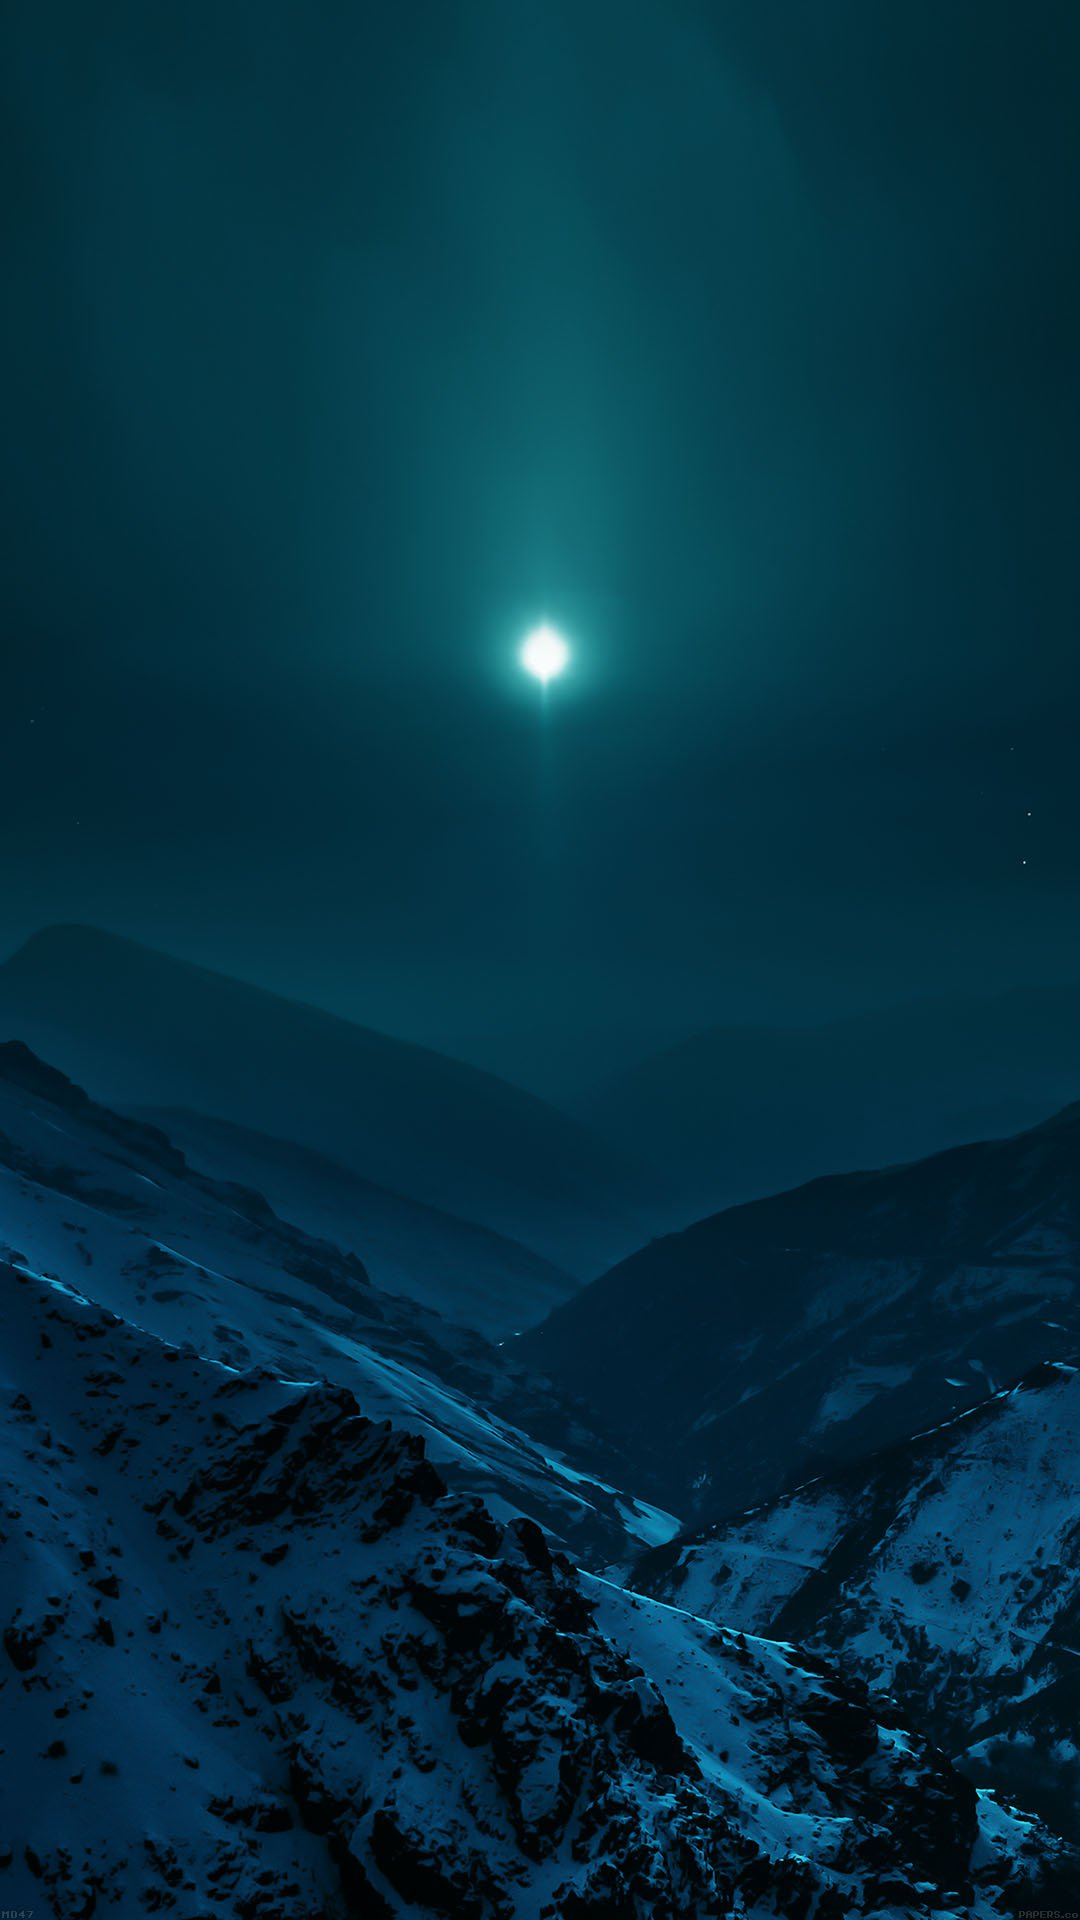 Wallpaper Nature Earth Asleep Mountain Night Wallpapers For Iphone